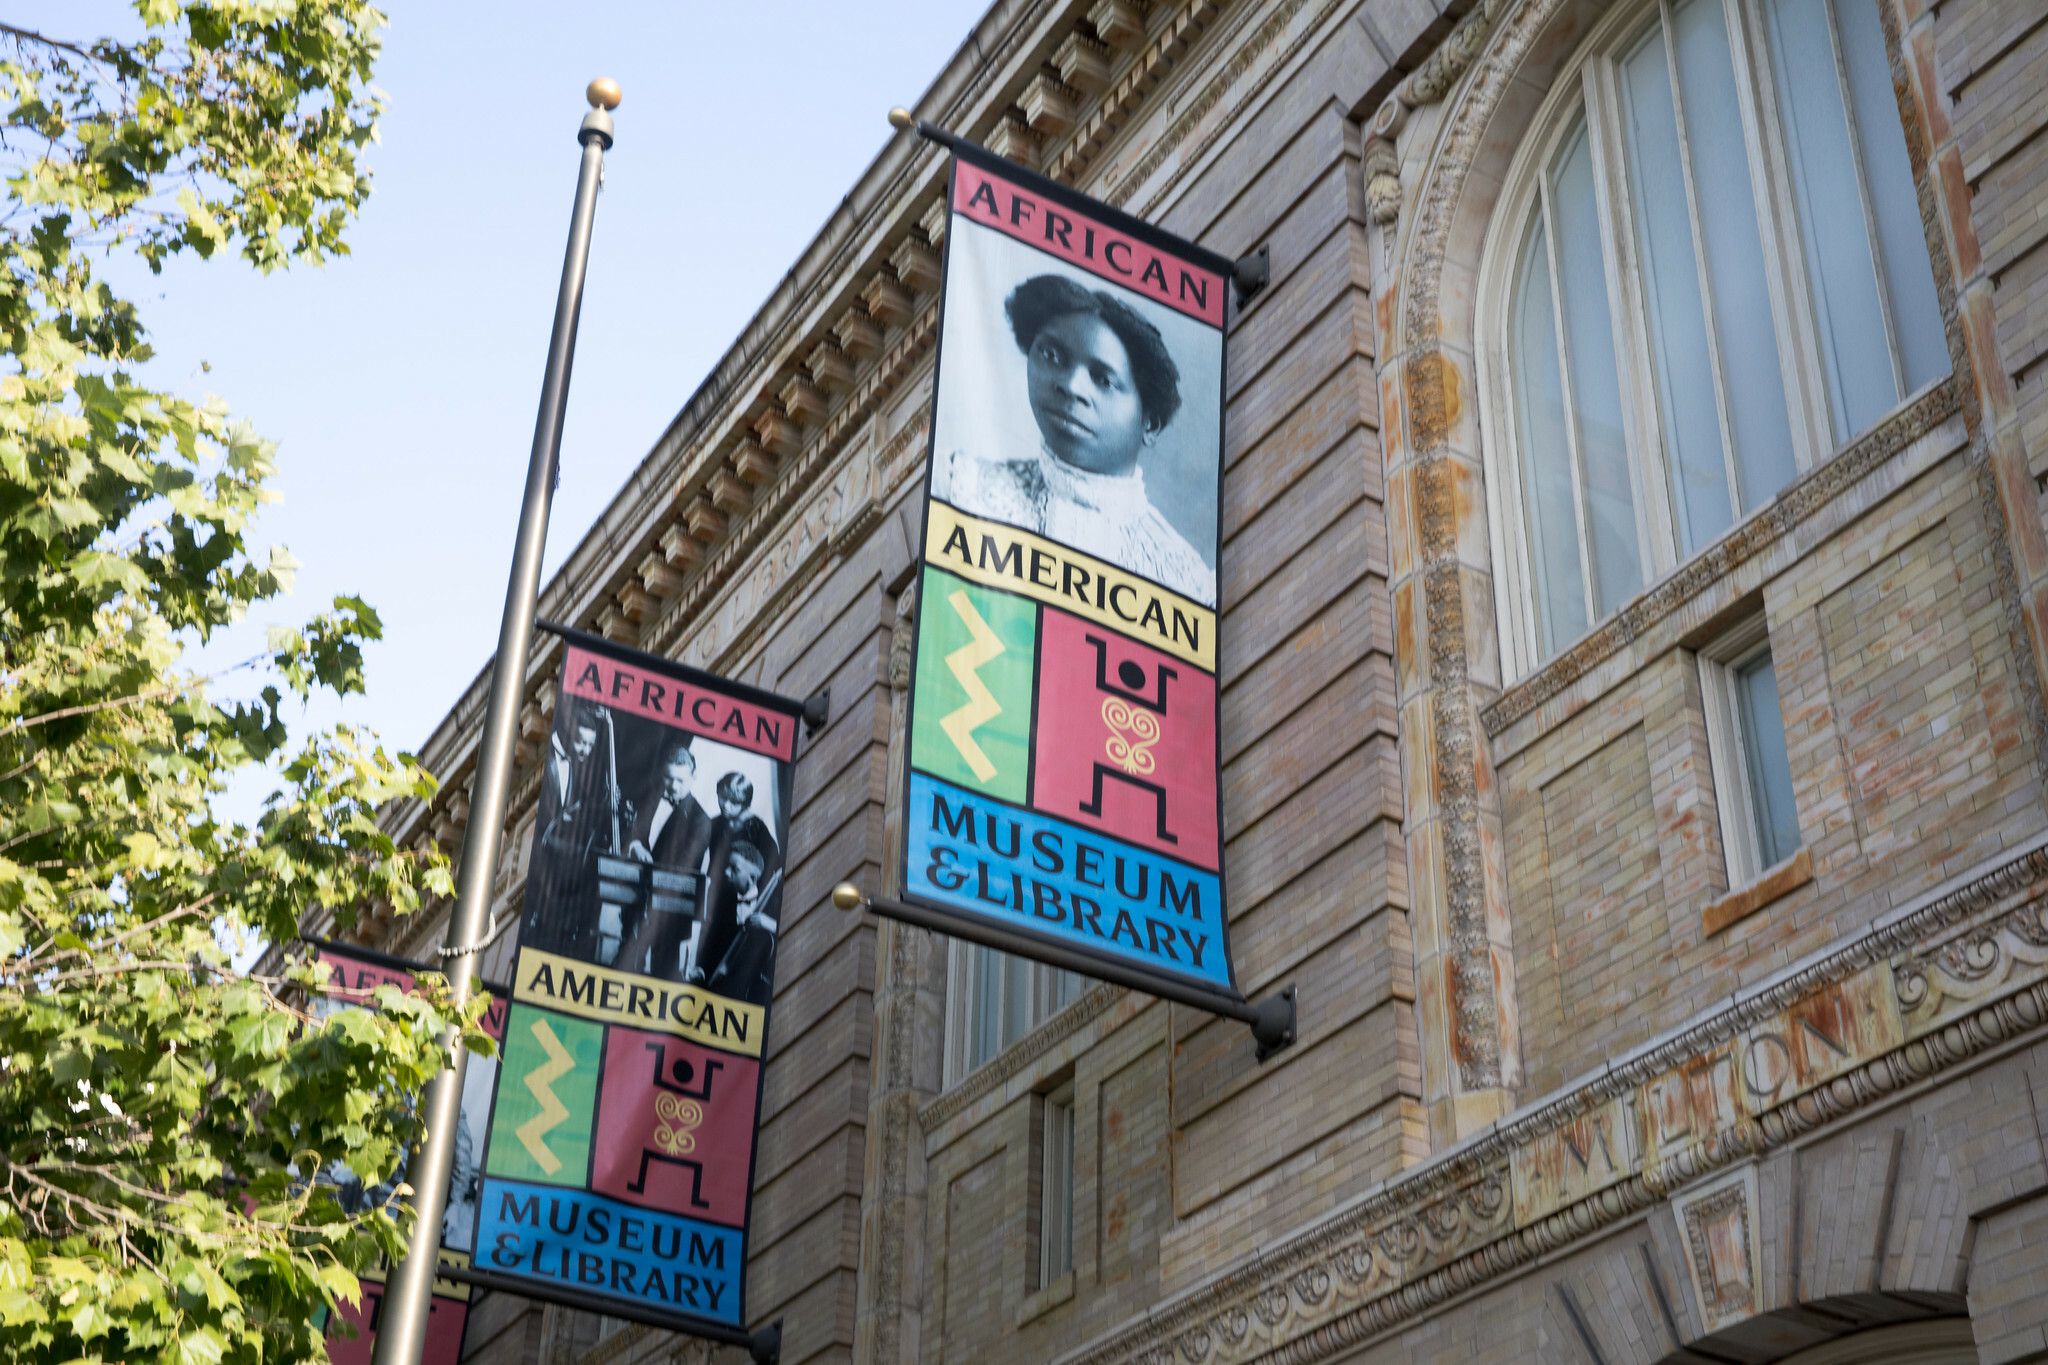 Colored banners advertising the African American Museum and Library at Oakland